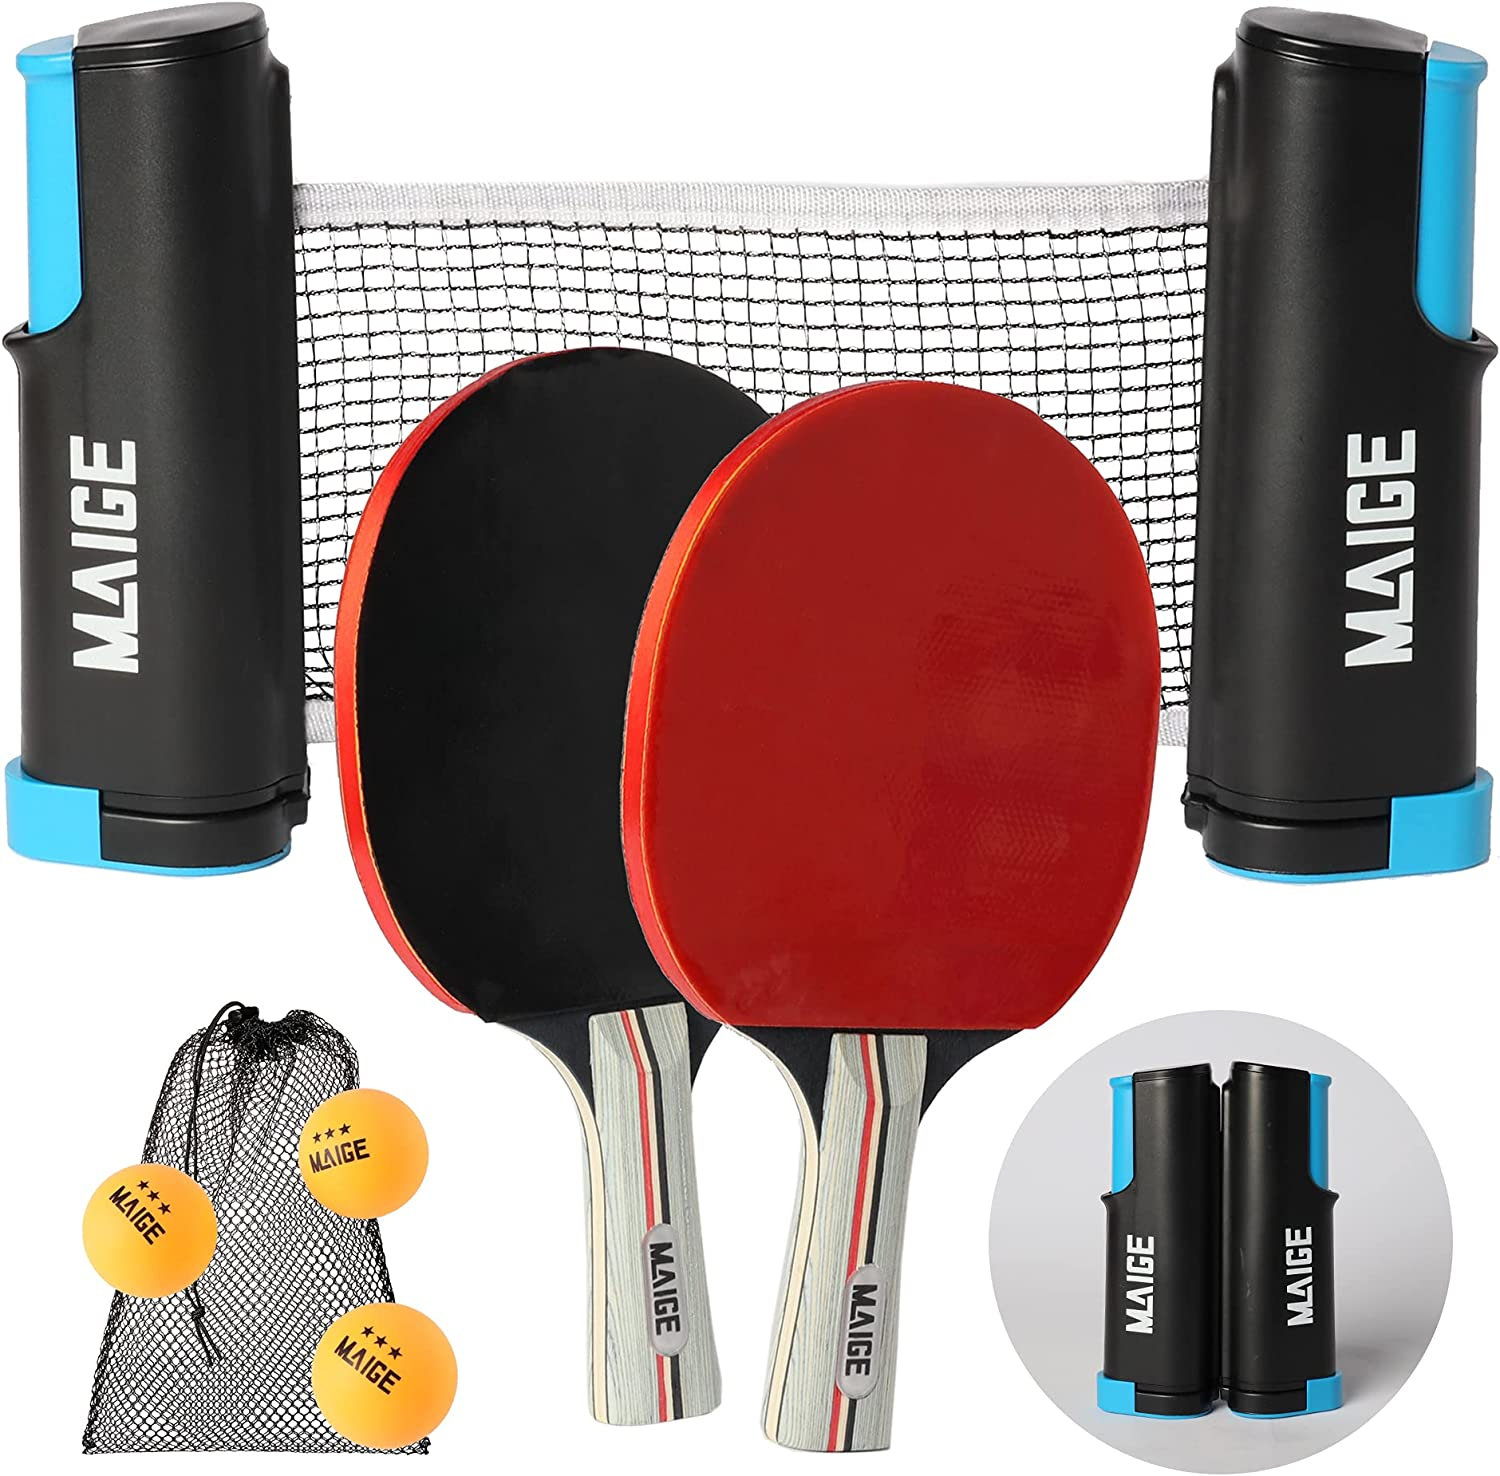 Maige Ping Pong Paddle Set   Table Tennis Paddle Set with Retractable Ping Pong Net   Portable Case and 3 Ping Pong Balls   Table Tennis Set for Indoor or Outdoor Play   Attach to Any Tabletop Surface : Sports & Outdoors